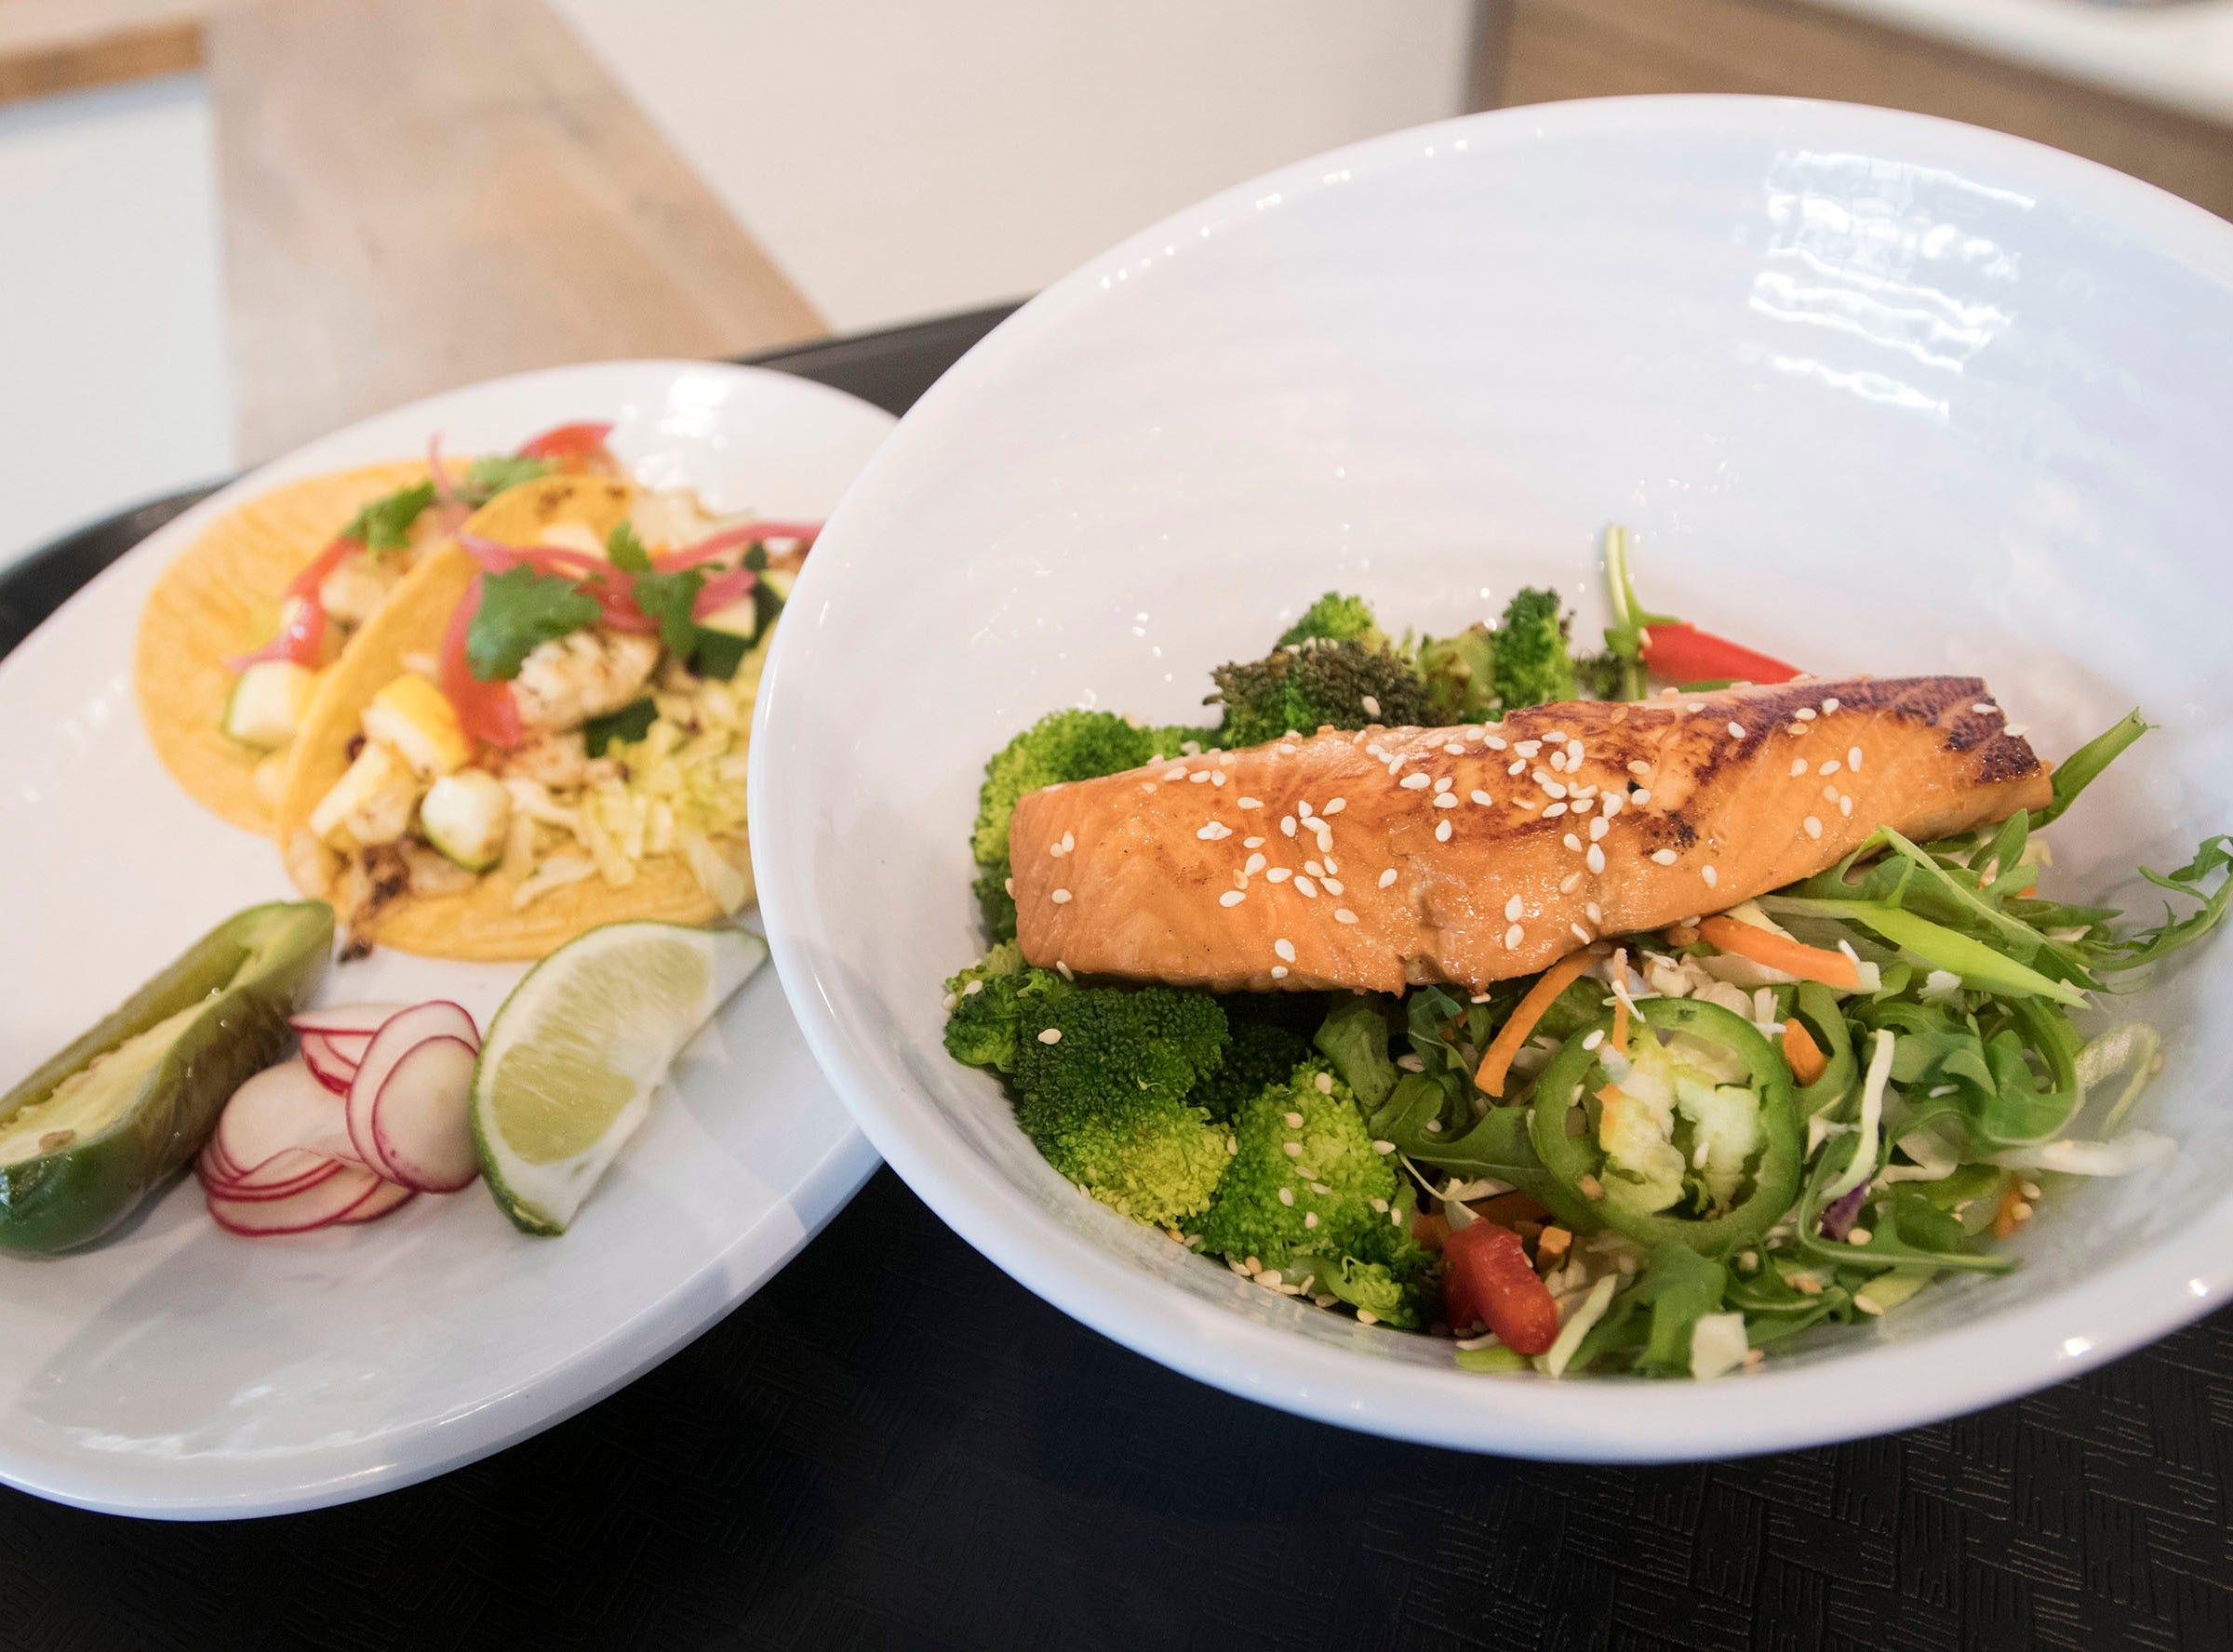 IQ Eatery, a new restaurant located on Barrancas Ave offers diners a variety of clean and healthy menu options such as the Veggie Tacos and the Orangey Salmon.